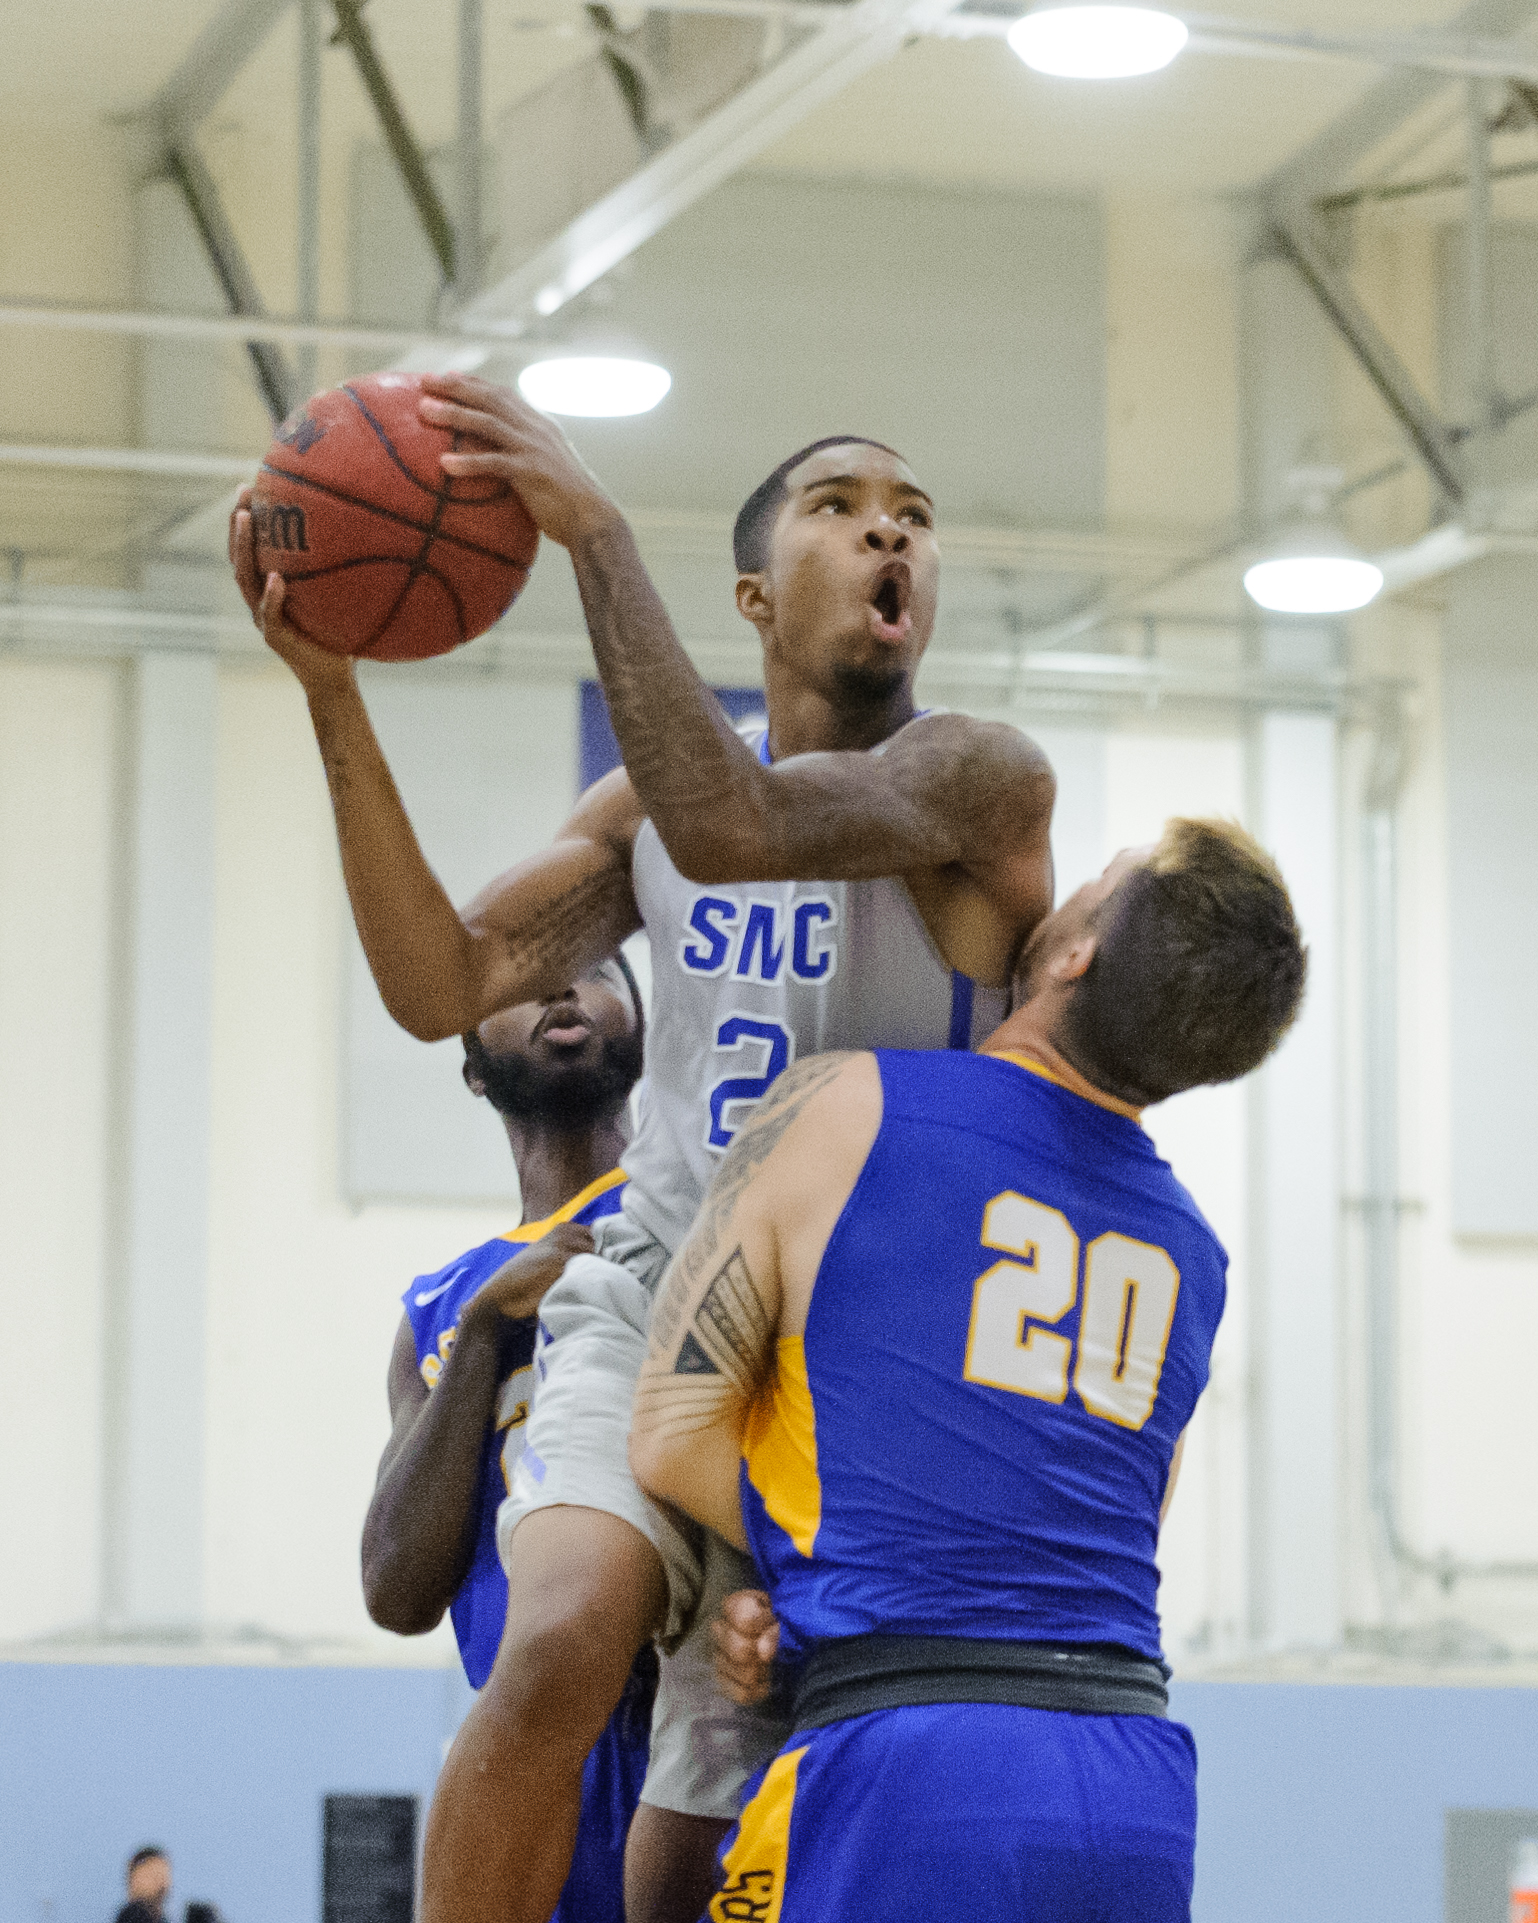 Guard Joe Robinson (2) of the Santa Monica College soars over the Southwest College defense for a shot attempt. The Santa Monica College Corsairs win their first home game of the season 84-53 against the Southwest College Cougars. The game was held at the SMC Pavilion at the Santa Monica College Main Campus in Santa Monica, Calif.. November 21, 2017.(Photo by: Justin Han/Corsair Staff)